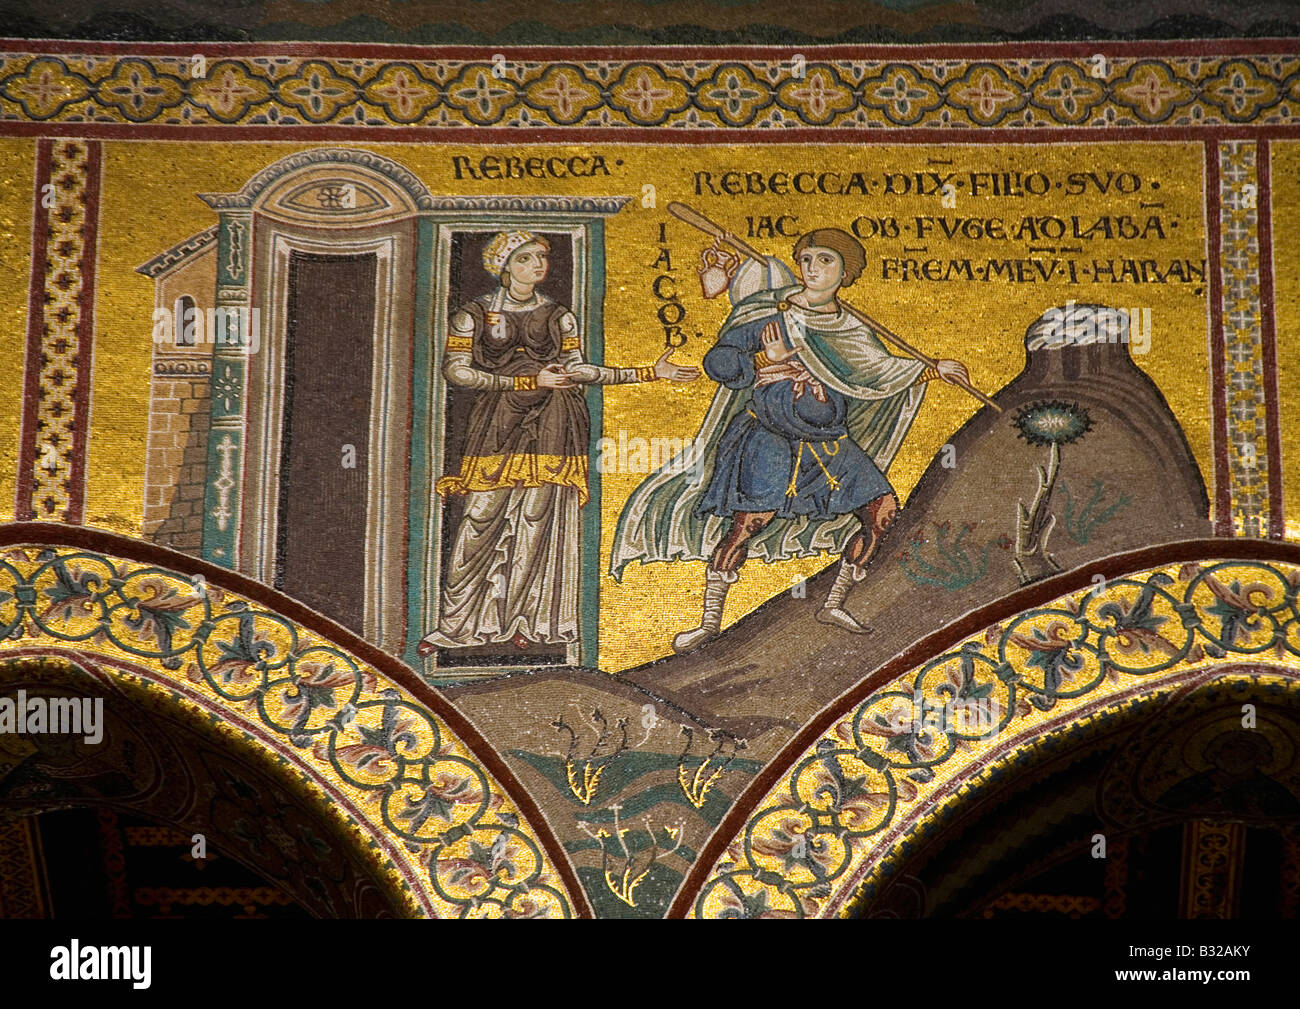 Monreale Cathedral near Palermo interior gold mosaic of Rebecca and her son Jacob Sicily Italy Europe EU Stock Photo